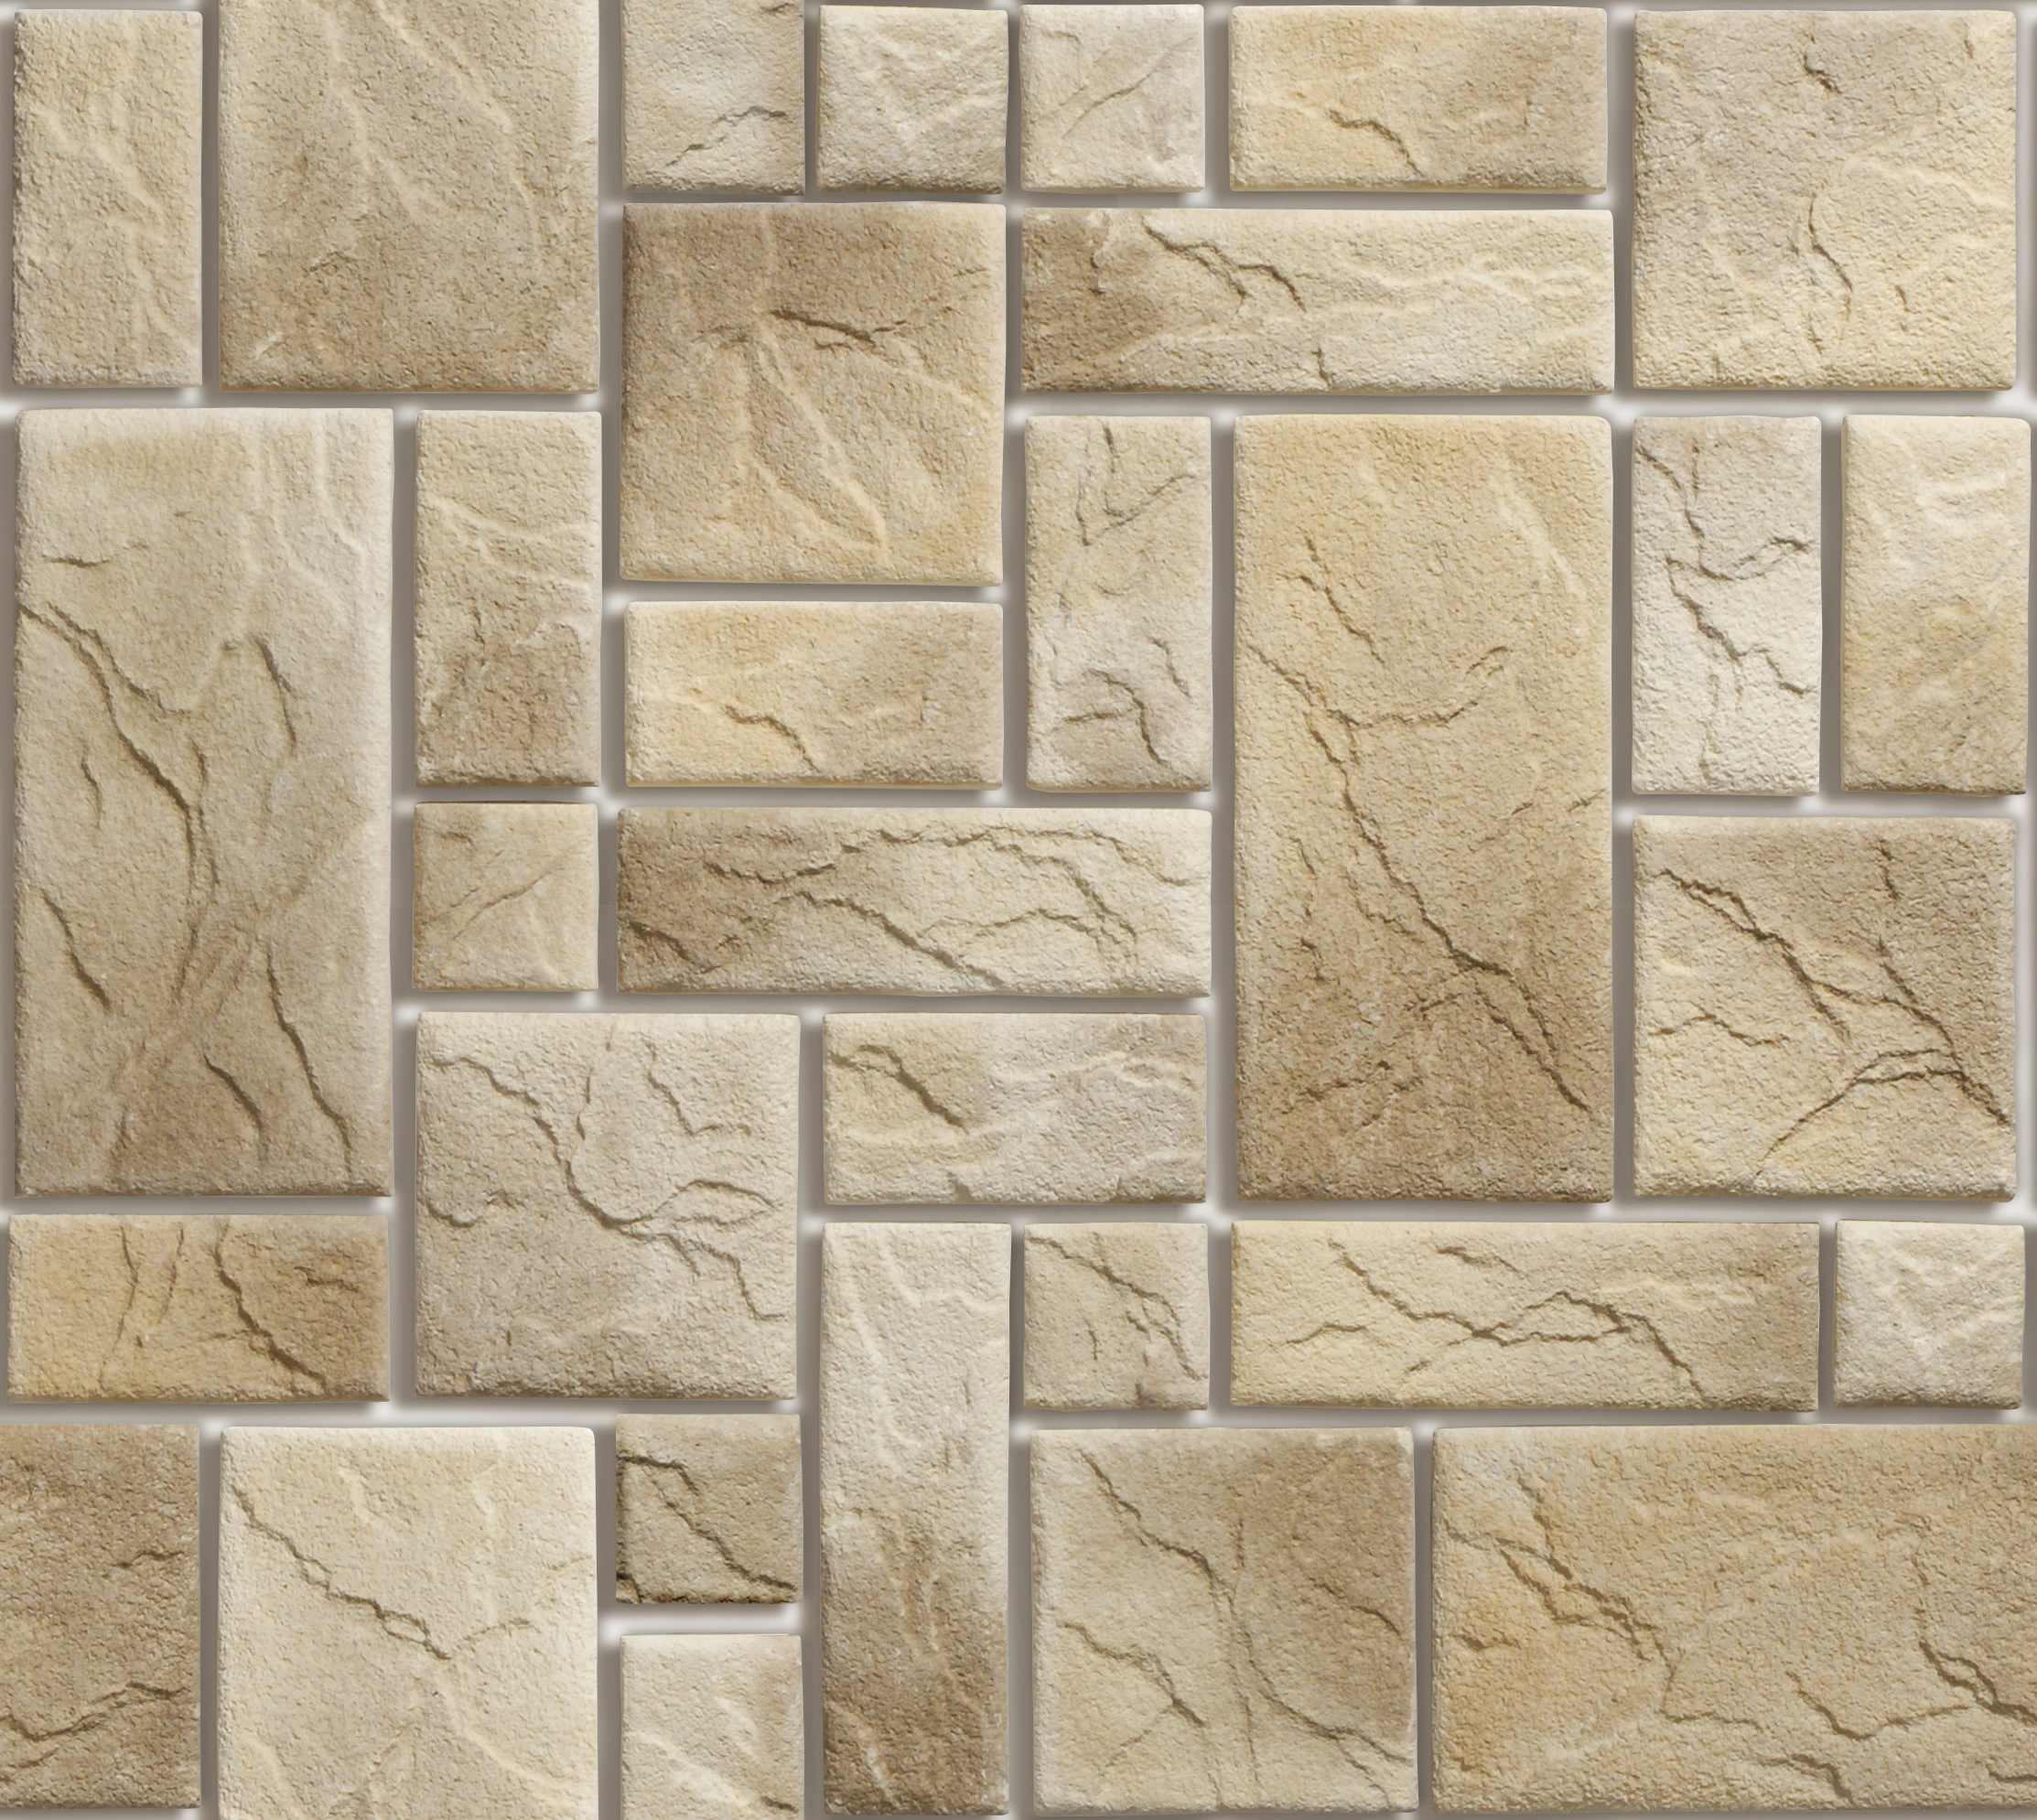 Stone hewn tile texture wall download photo stone texture for Wall tile planner